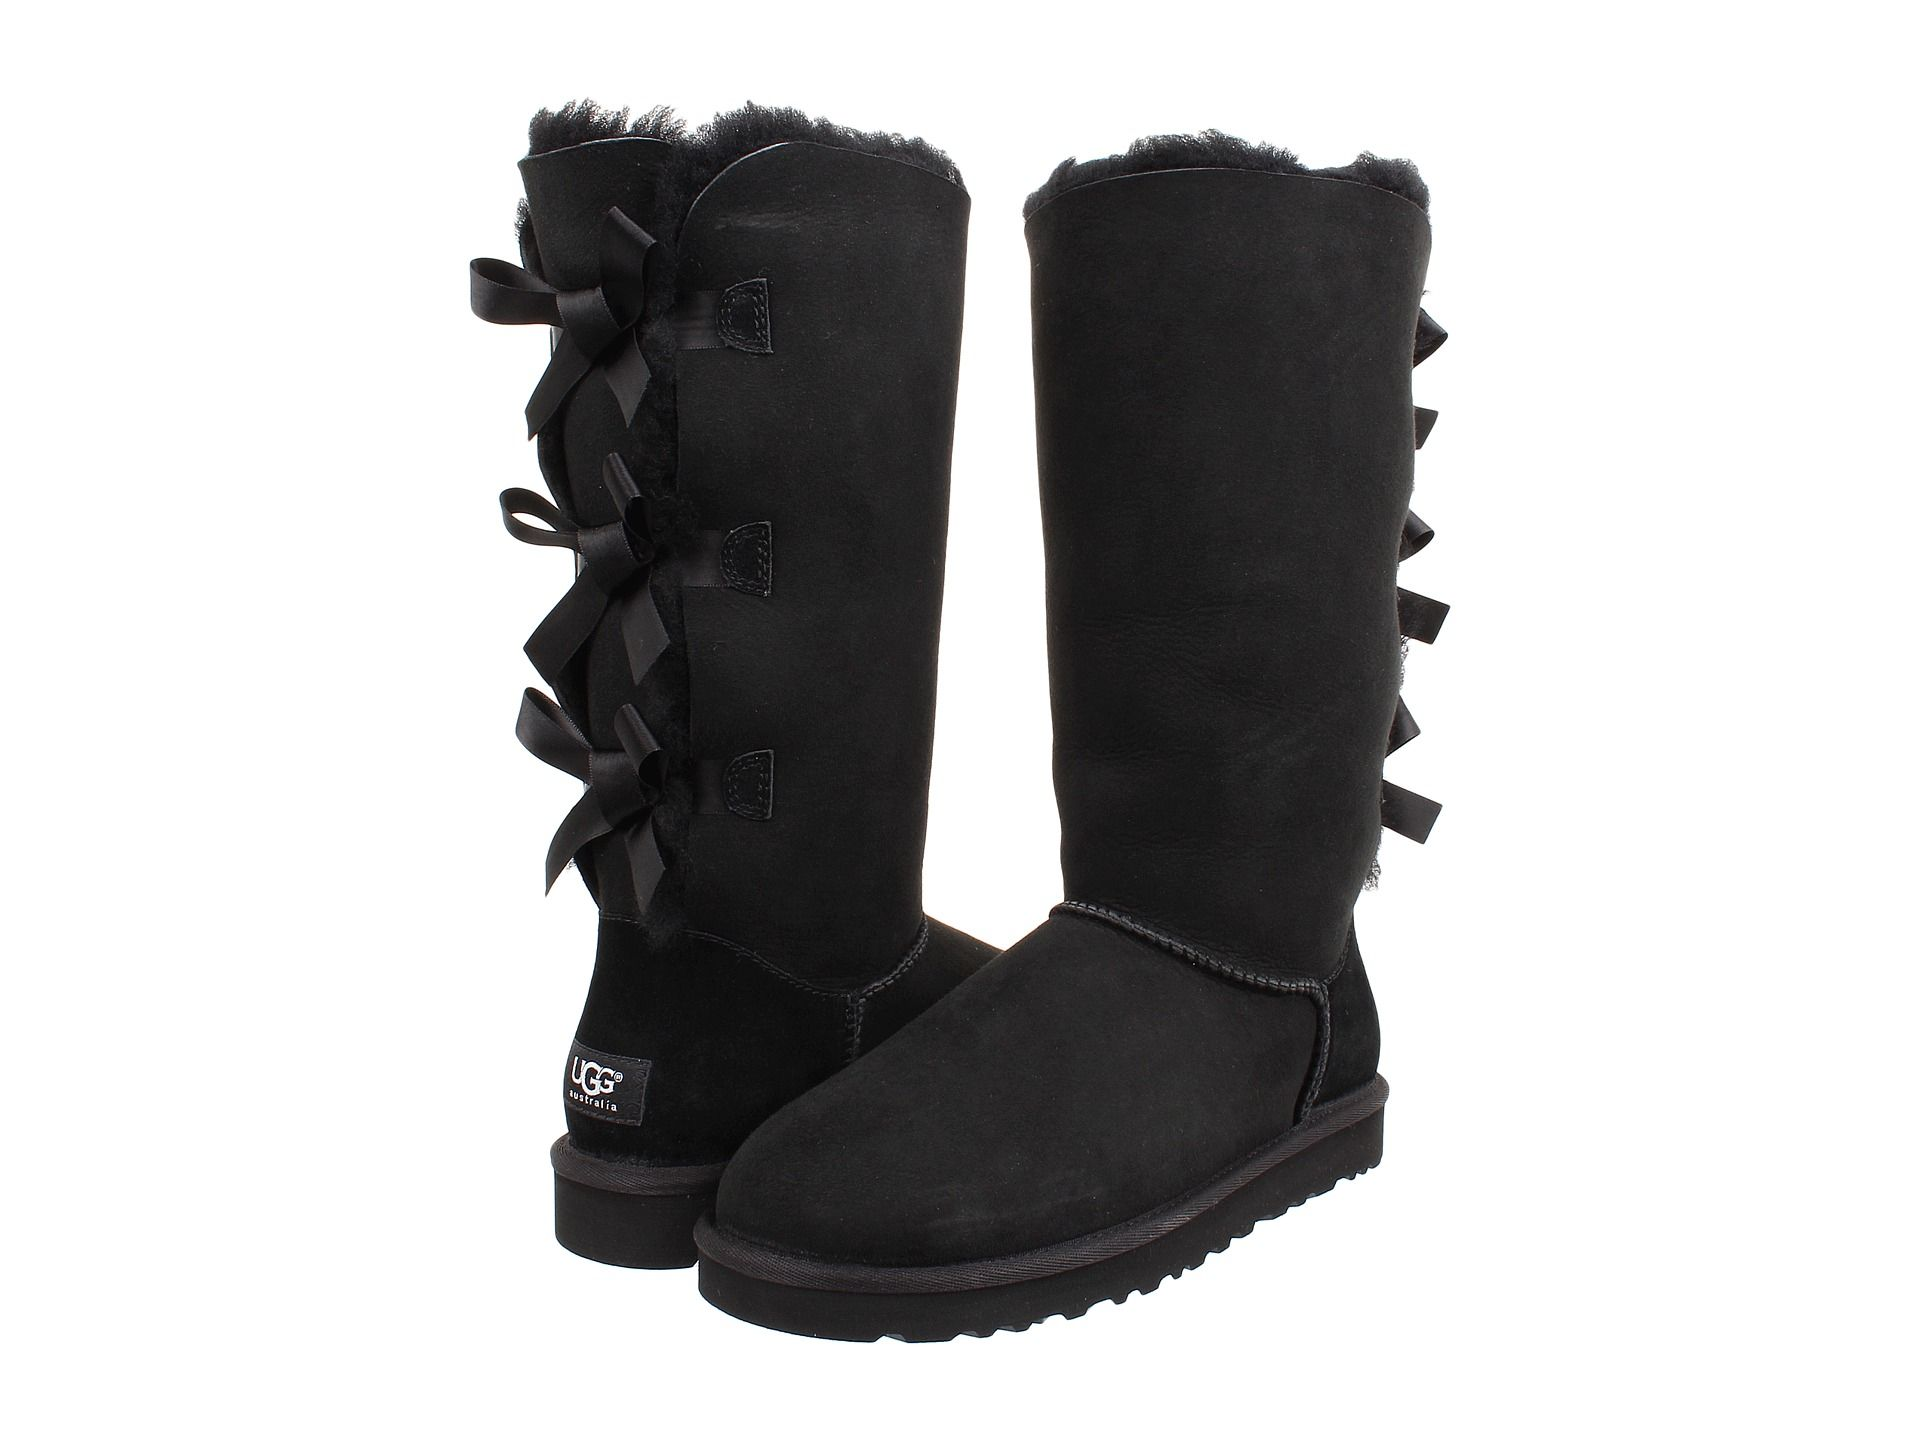 d831c98c104 ugg boots with three bows - Google Search   2015 Xmas ideas   Ugg ...